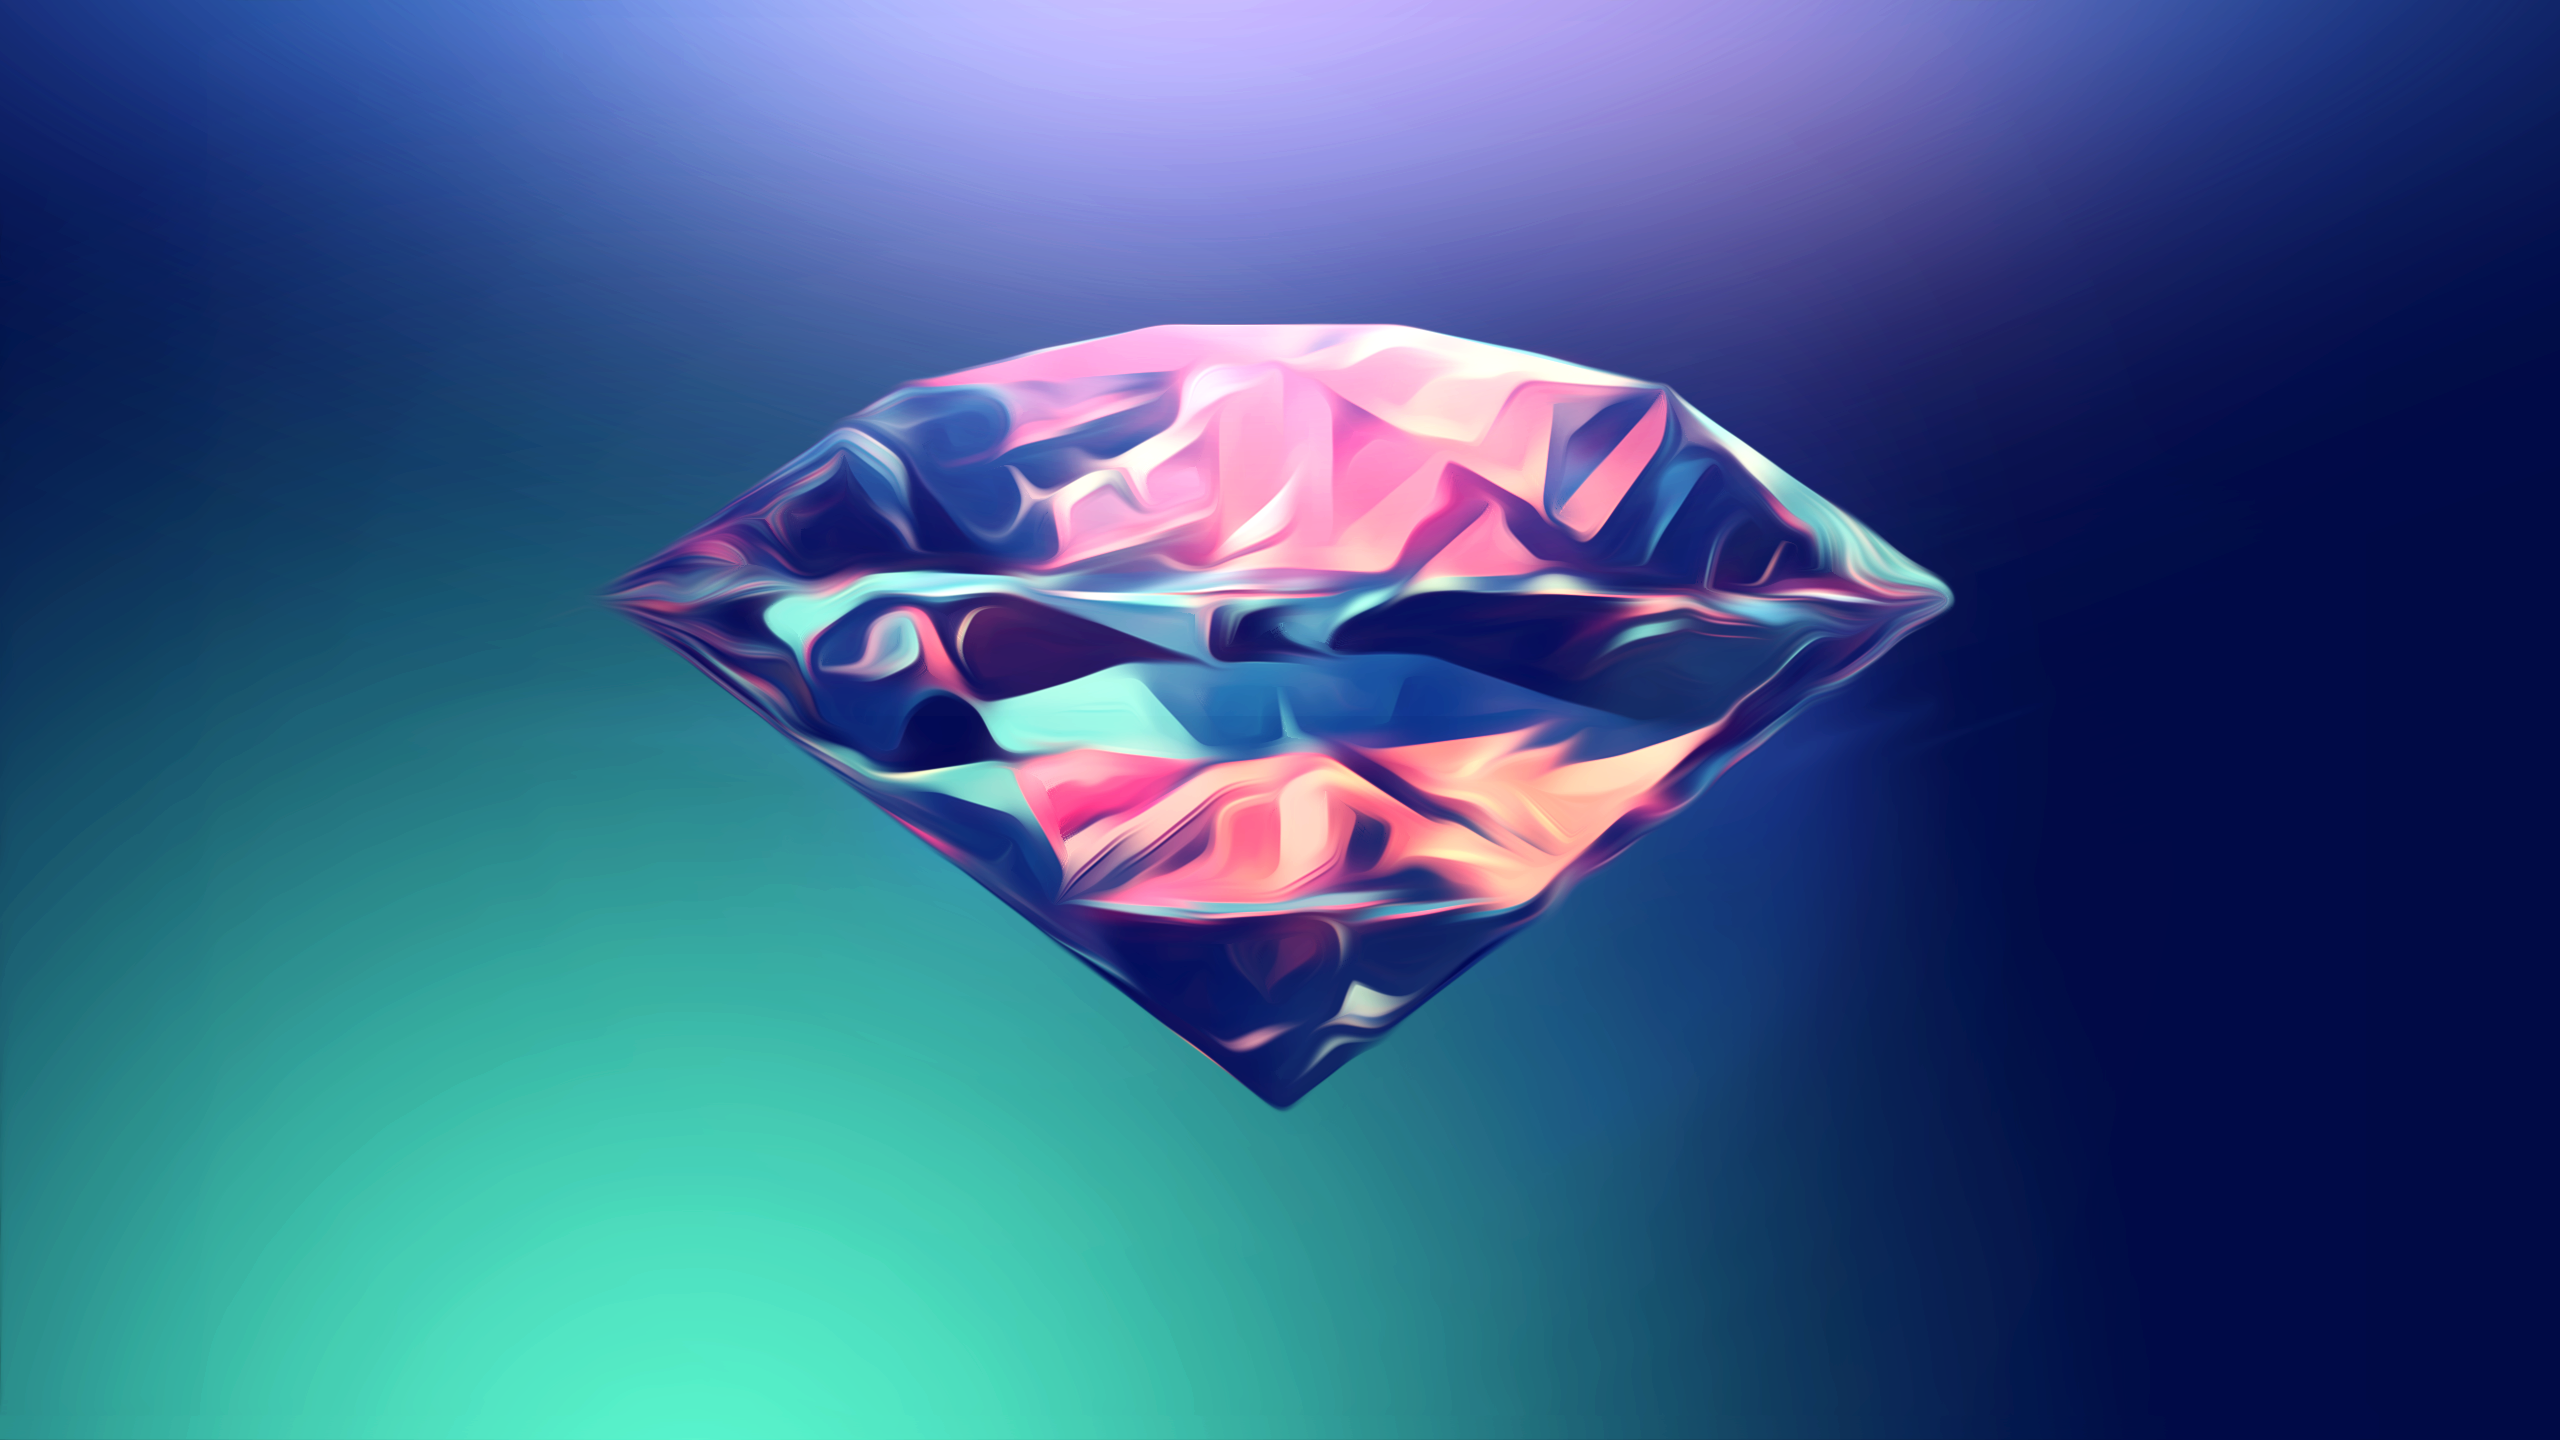 abstract diamond wallpaper by silentpotatogfx on deviantart